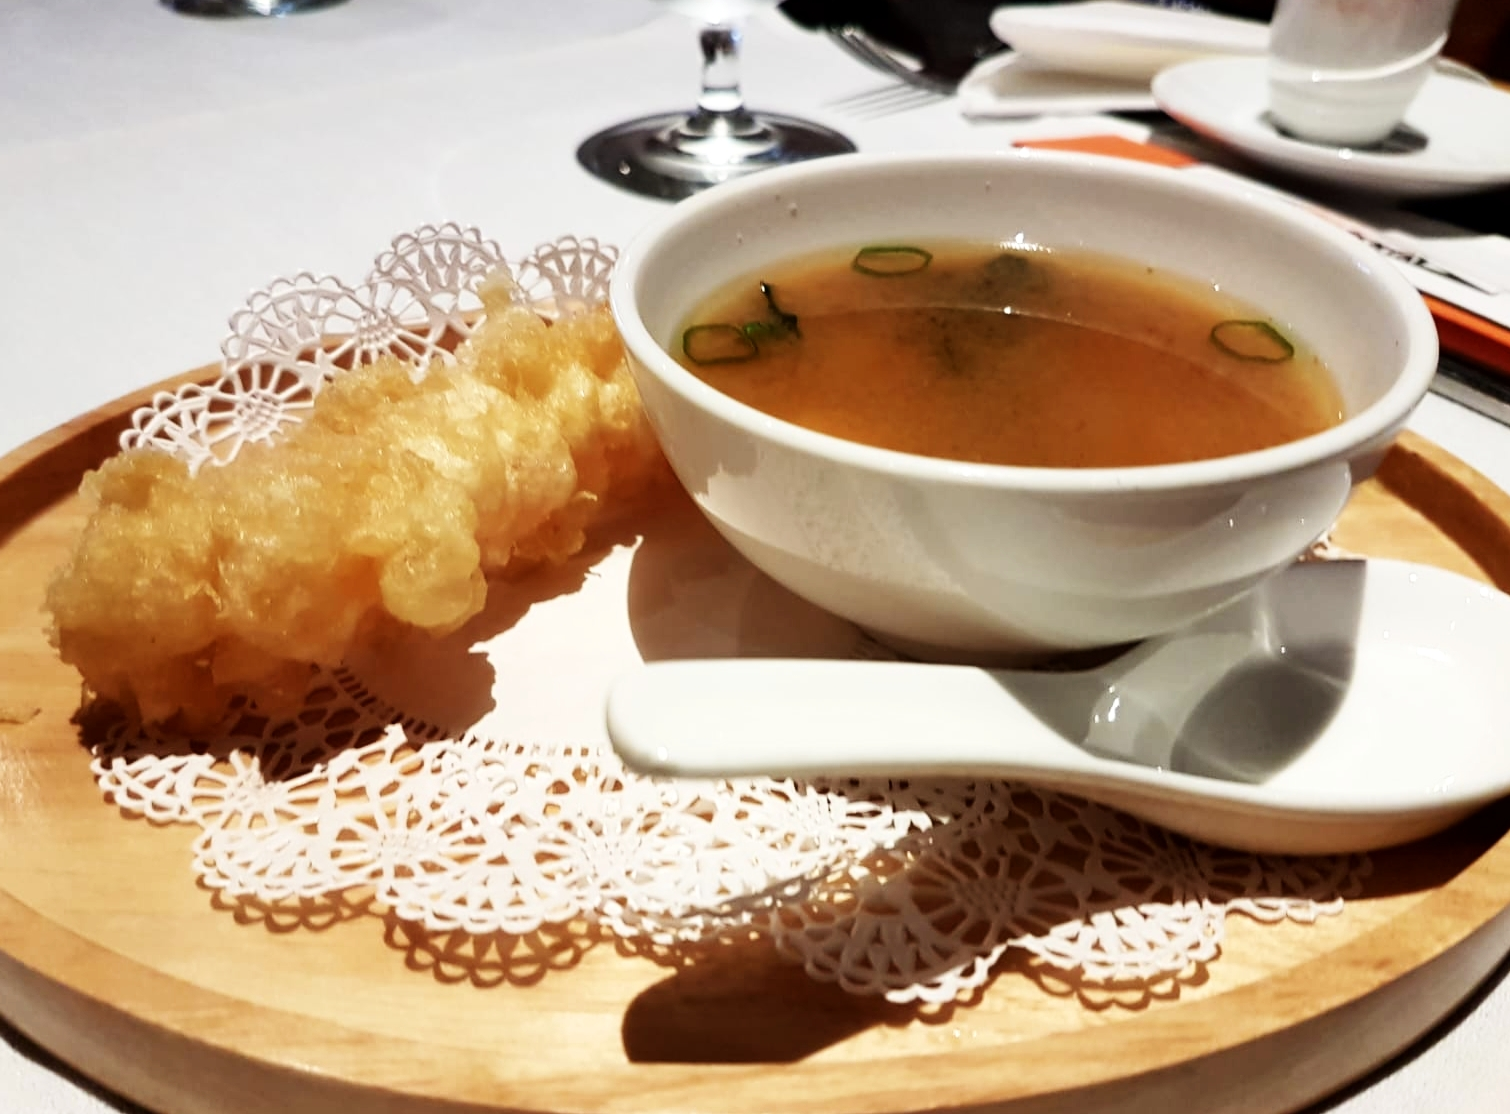 Shrimp Tempura and Miso Soup!